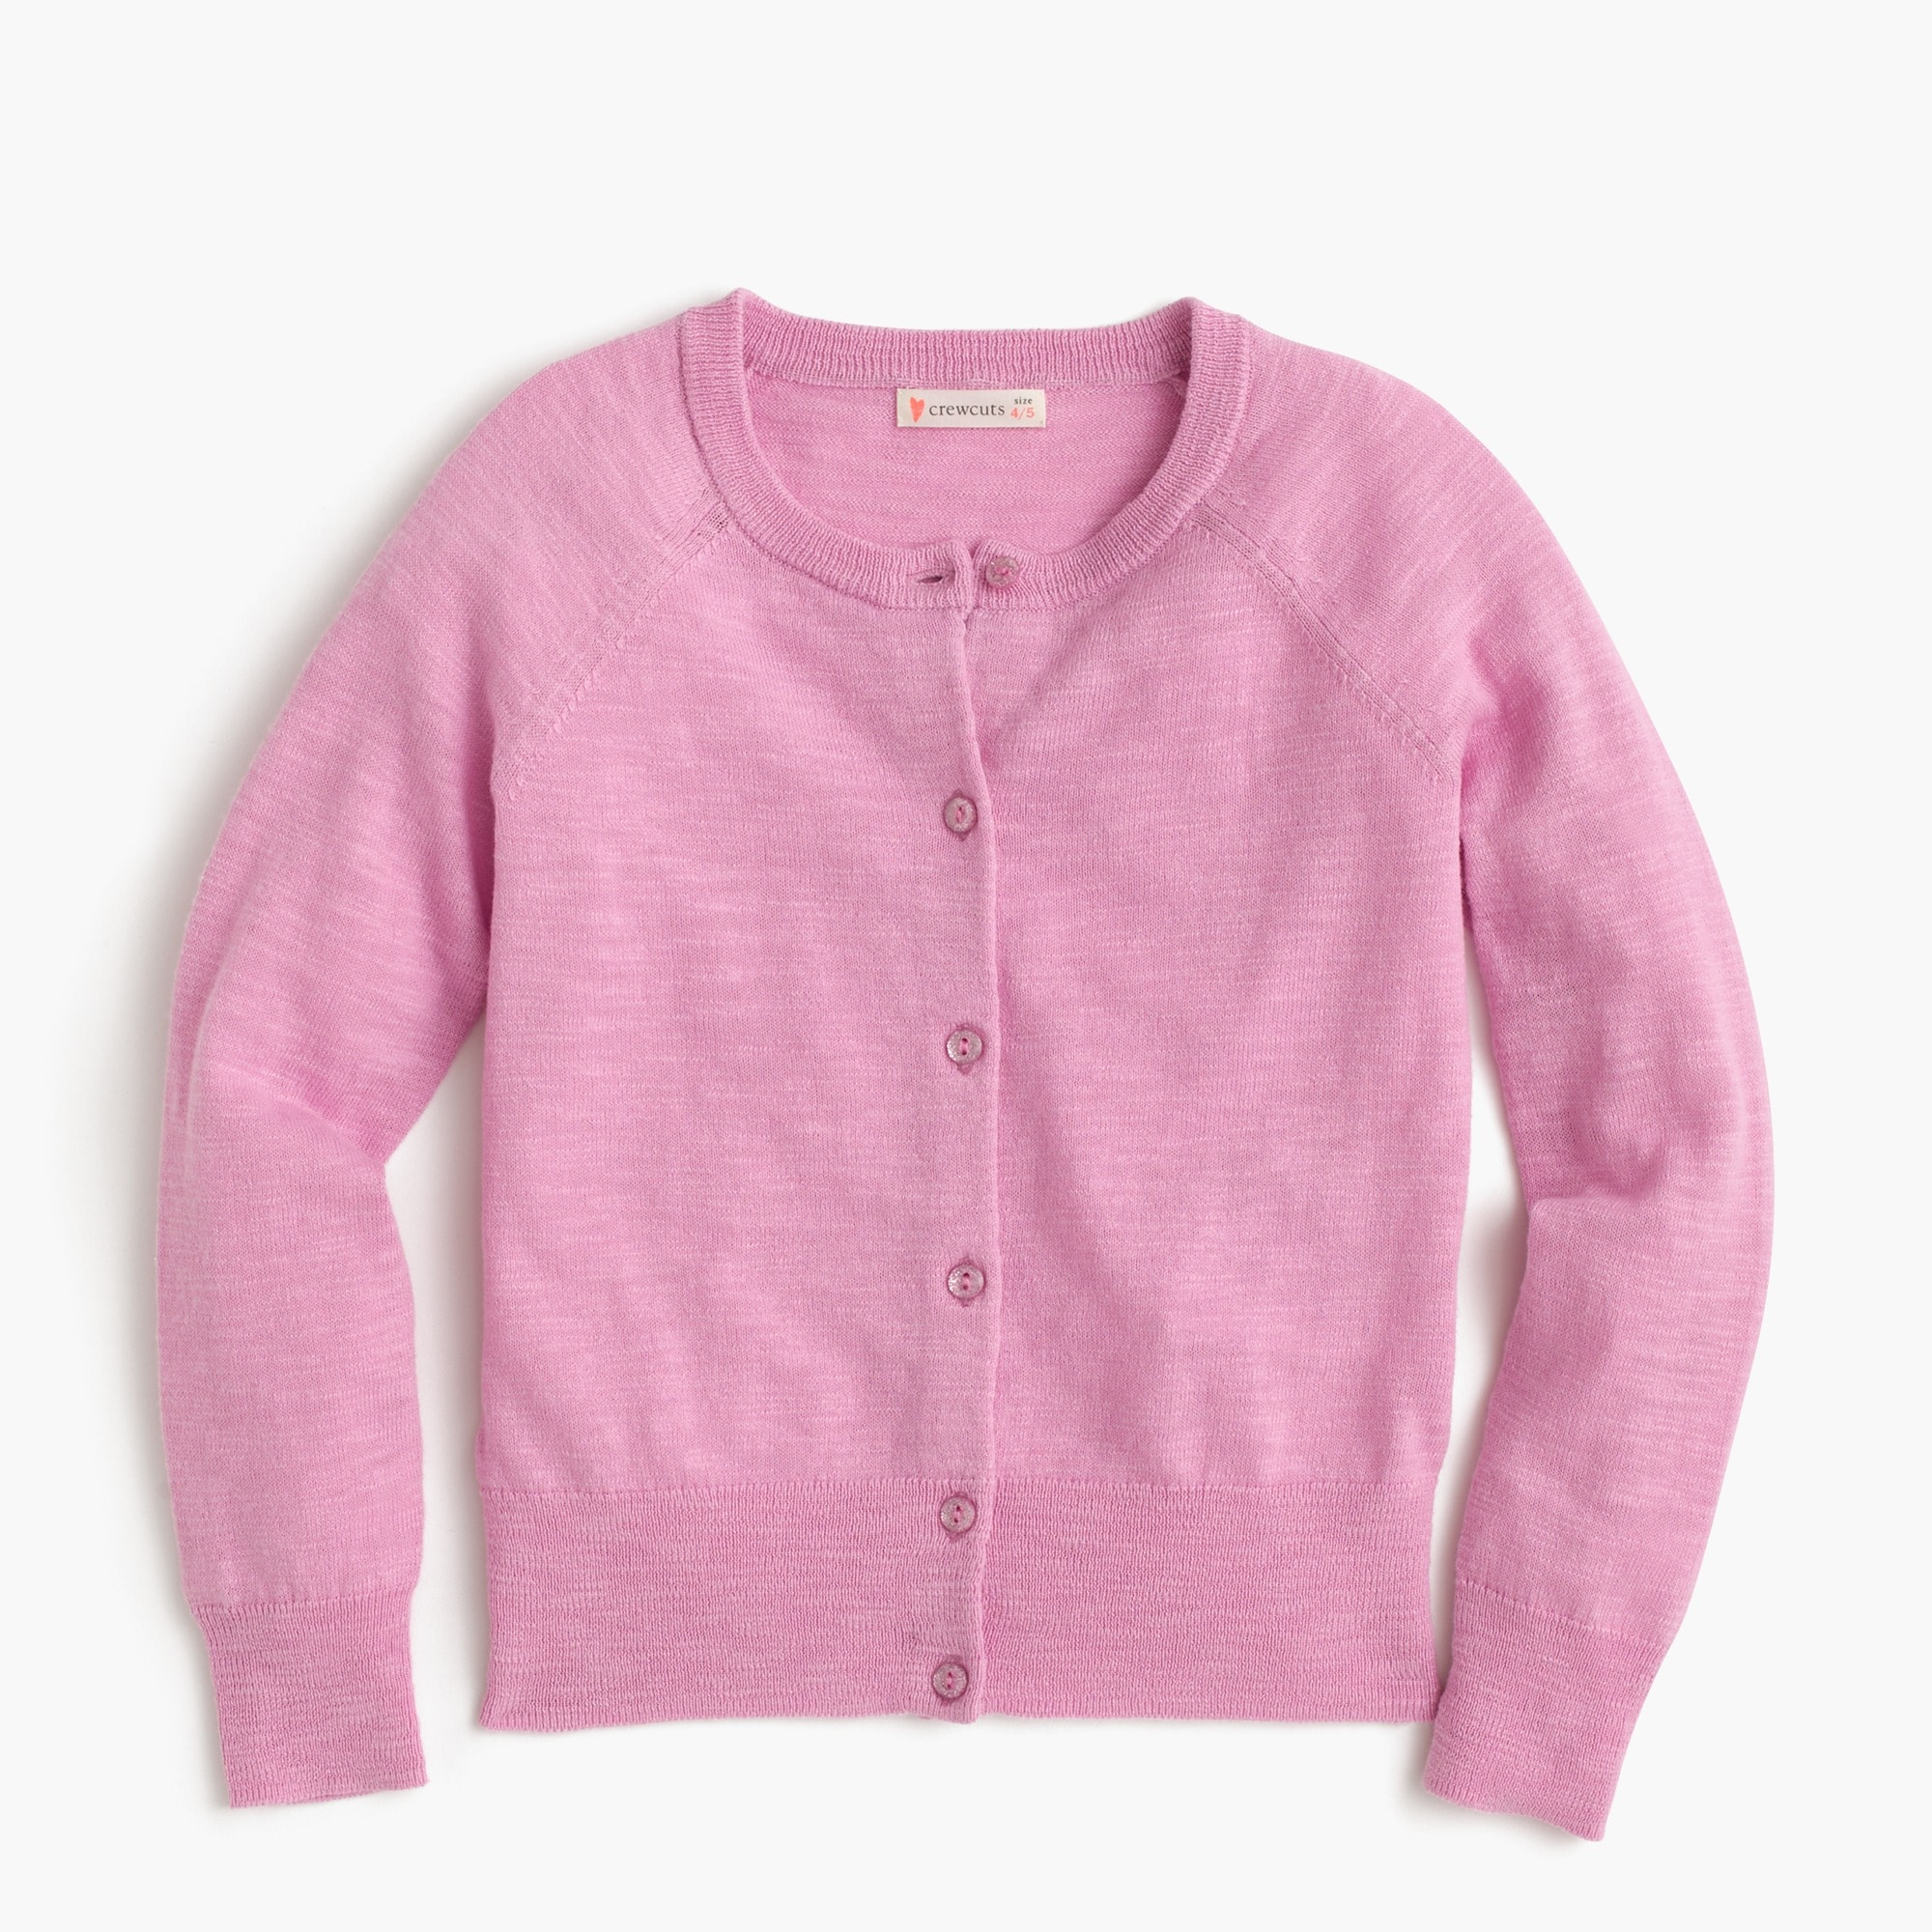 Girls' Caroline cardigan sweater girl sweaters c